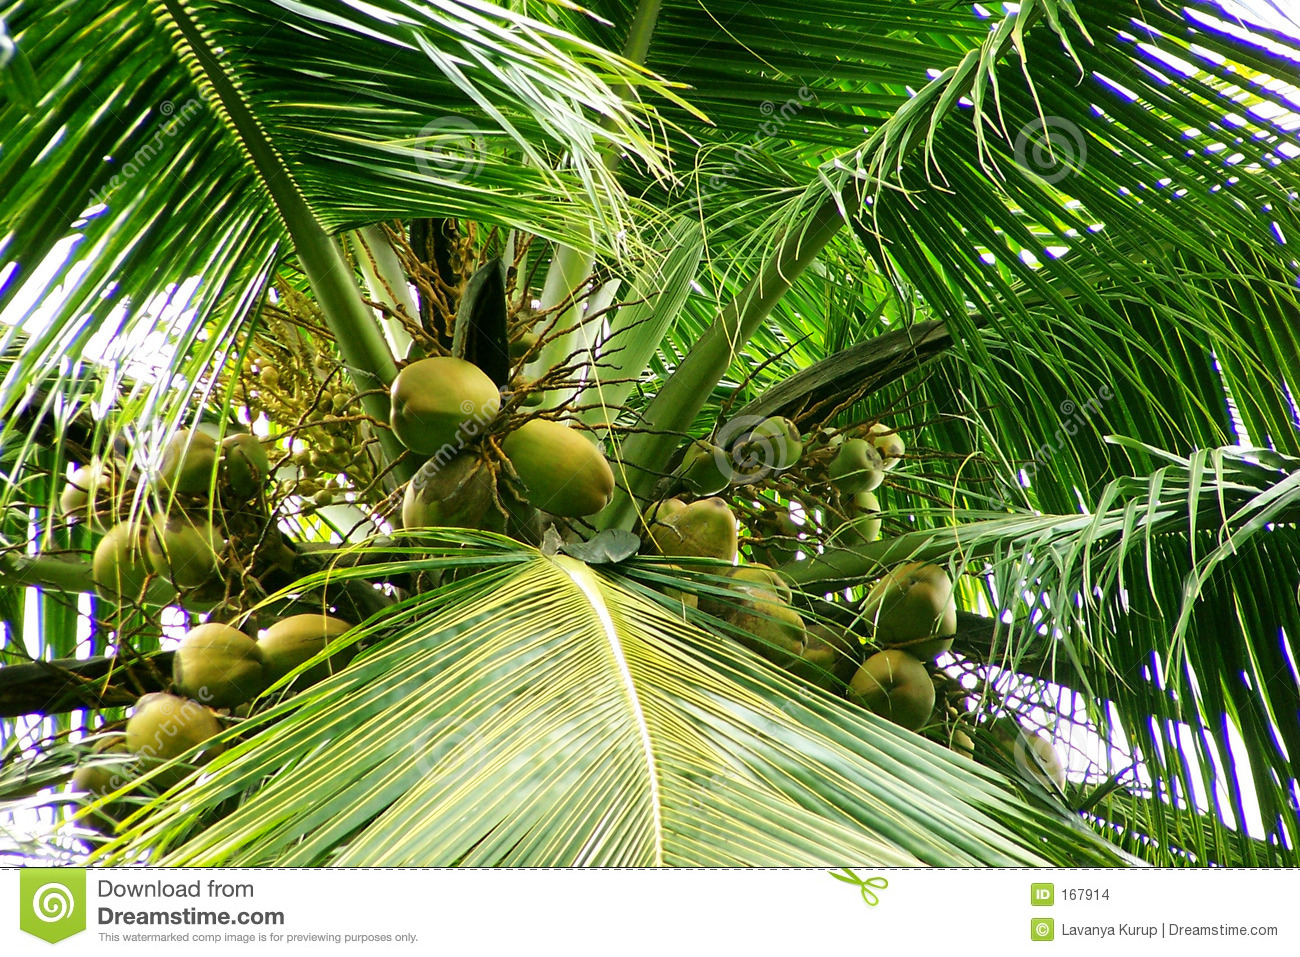 Coconuts- flowers and young fruits